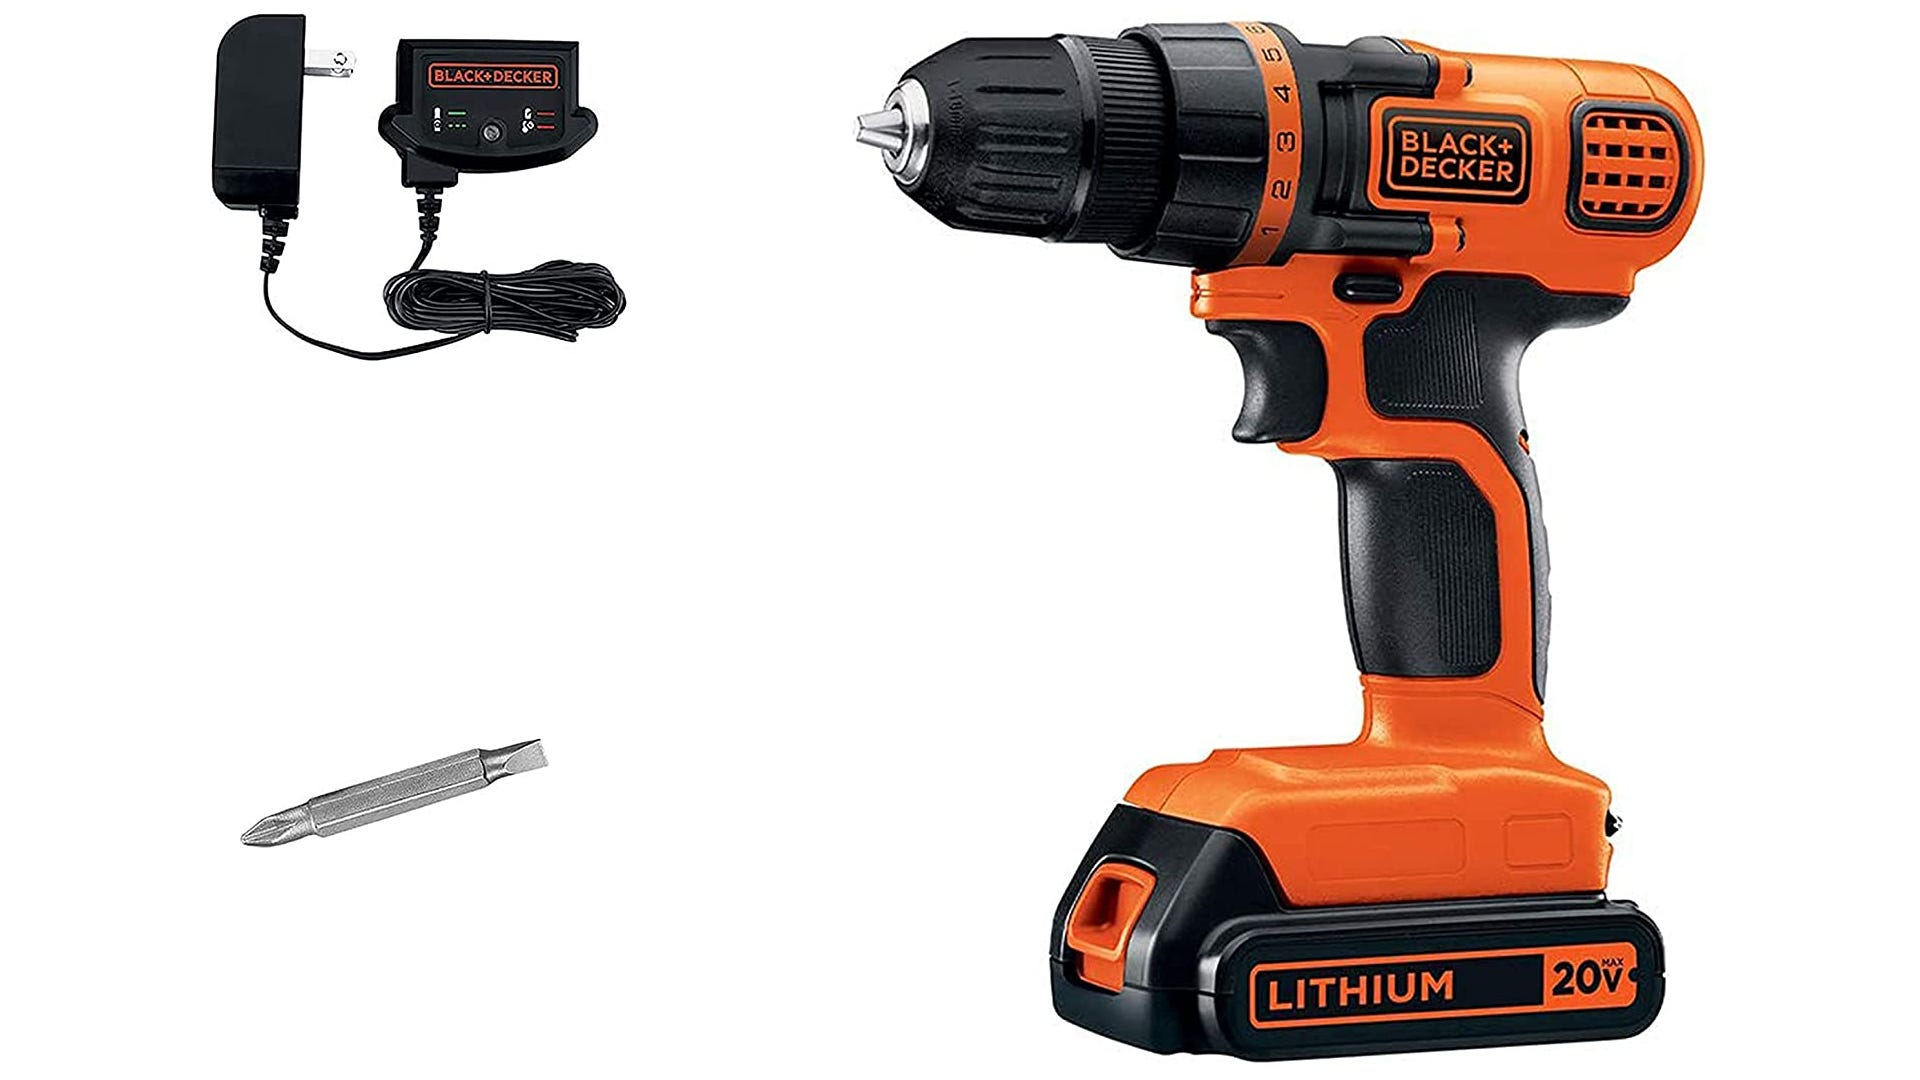 """Black and orange 20V cordless drill with 2 batteries, 1/2"""" metal chuck, and storage case"""